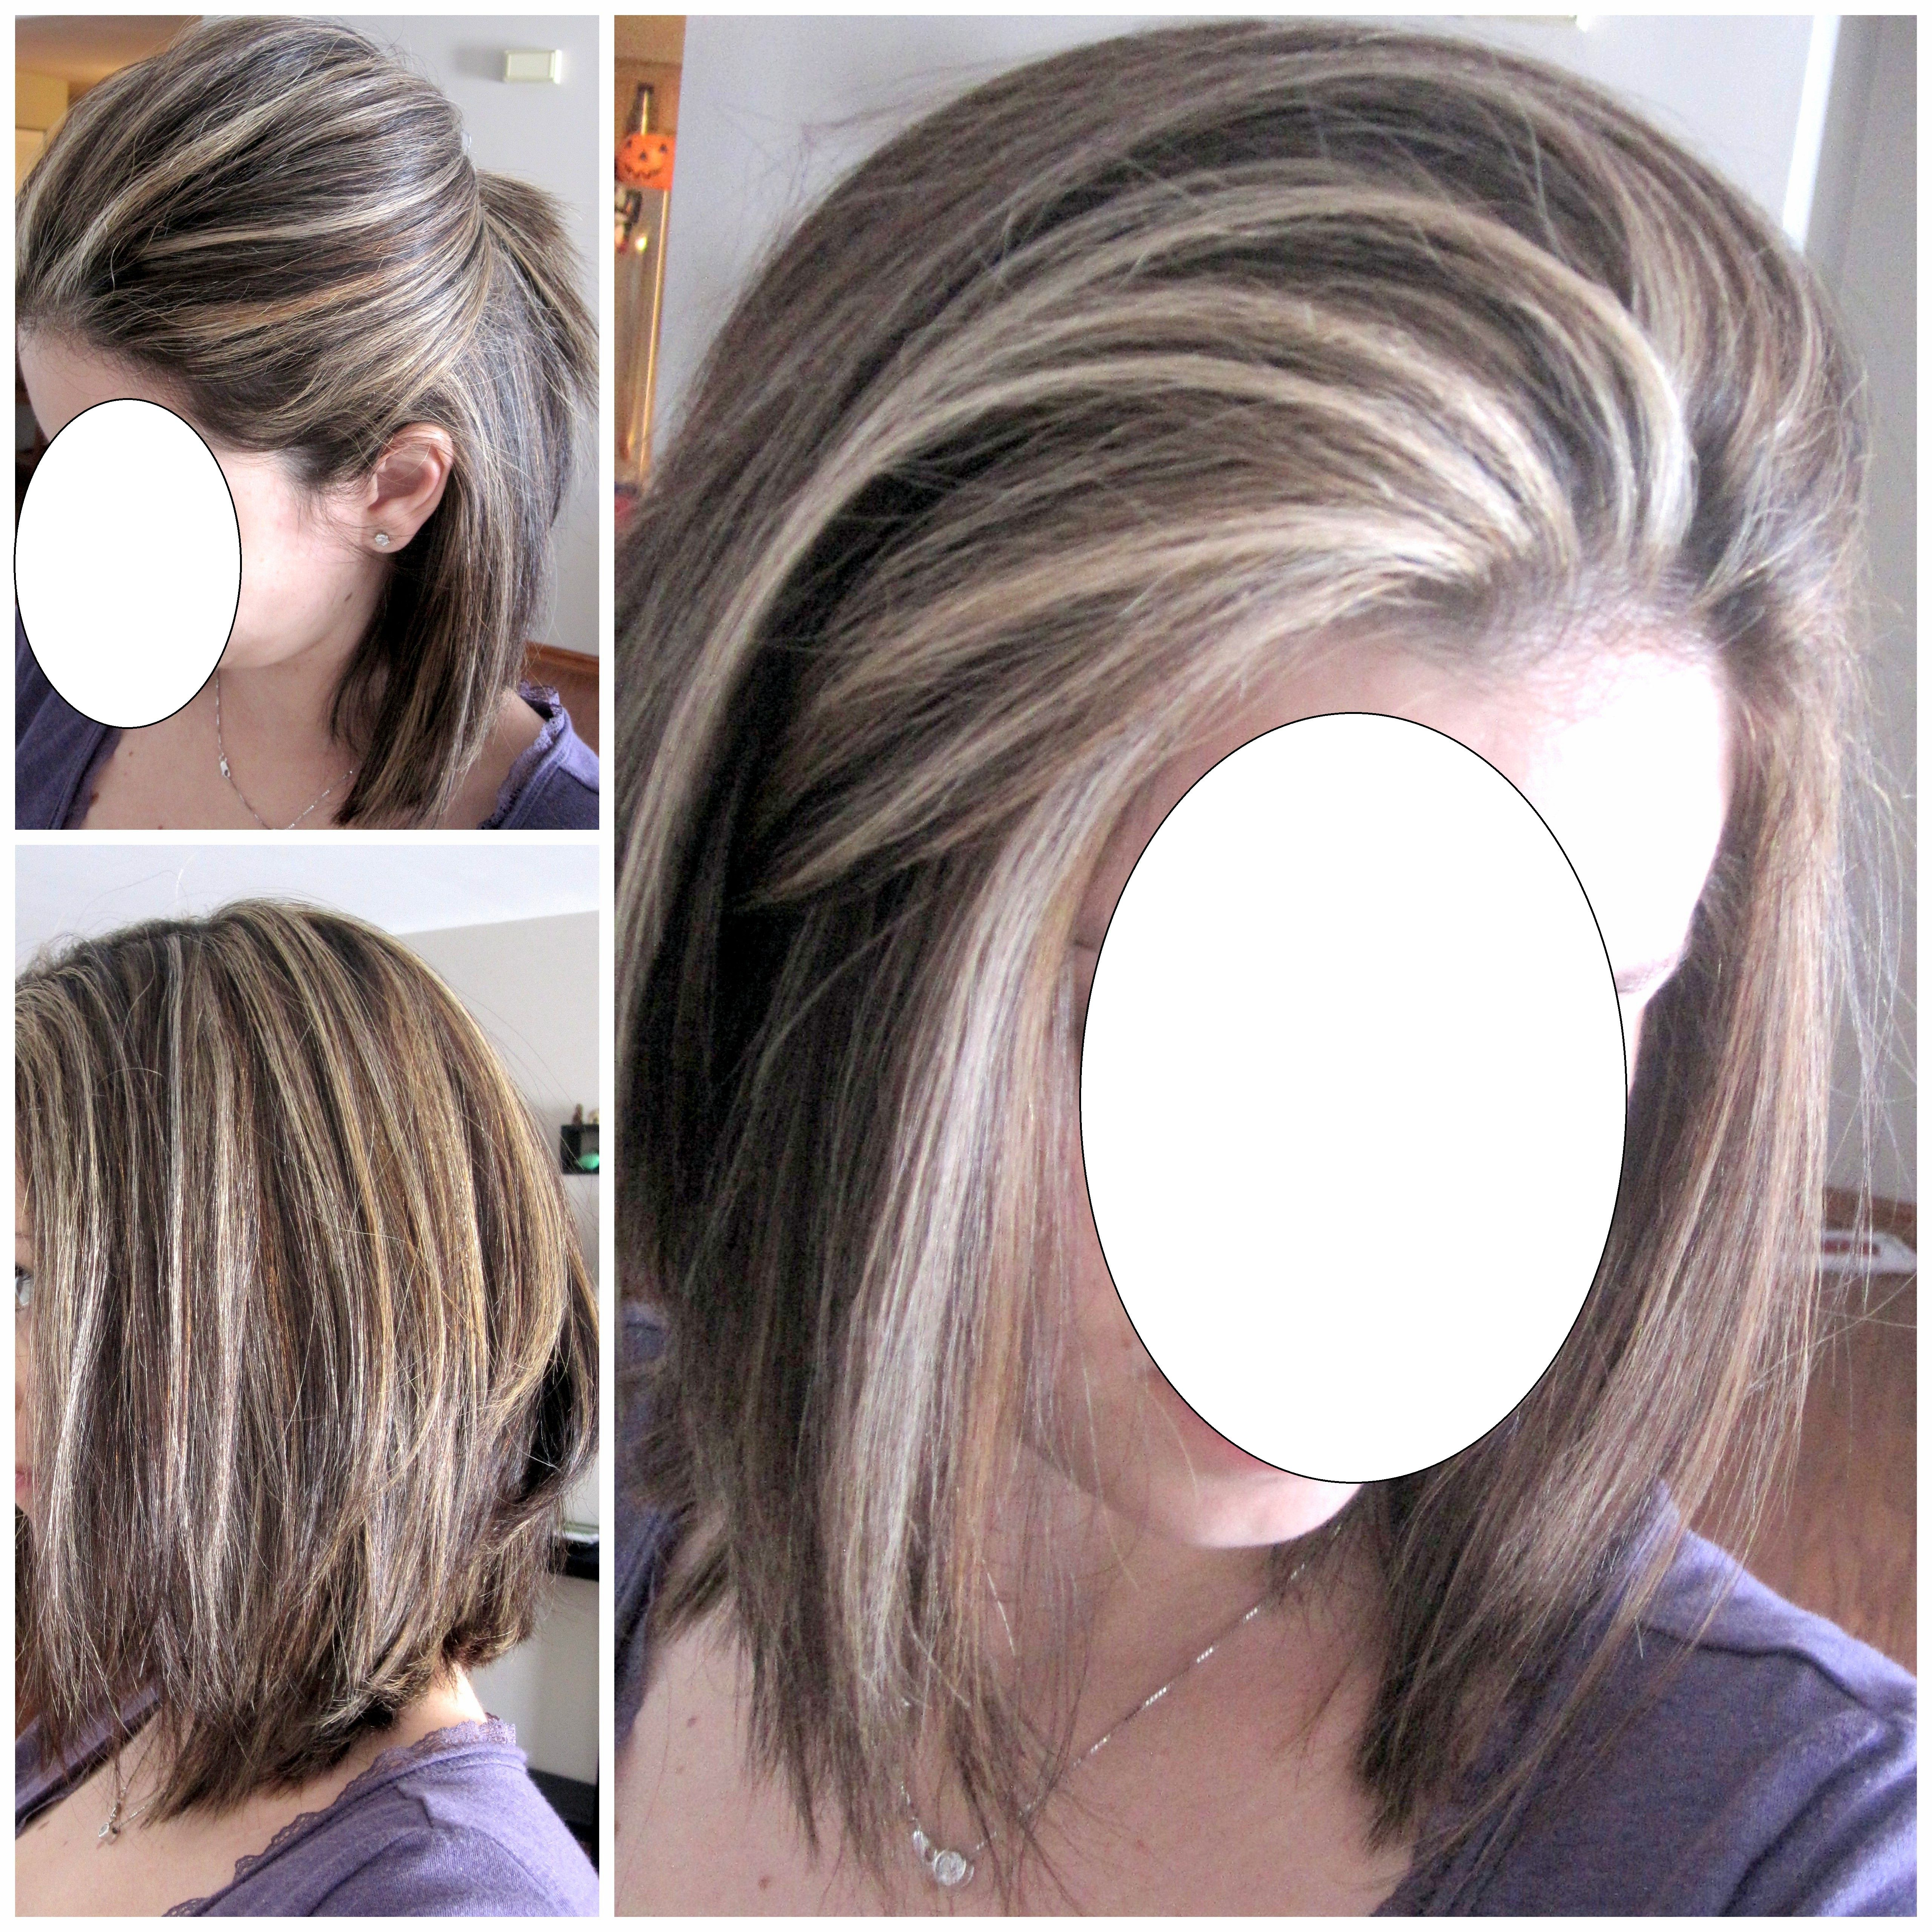 25 Short Haircuts And Colors In 2018 | Hair Do's | Pinterest | Hair Regarding Short Bob Hairstyles With Dimensional Coloring (View 5 of 20)